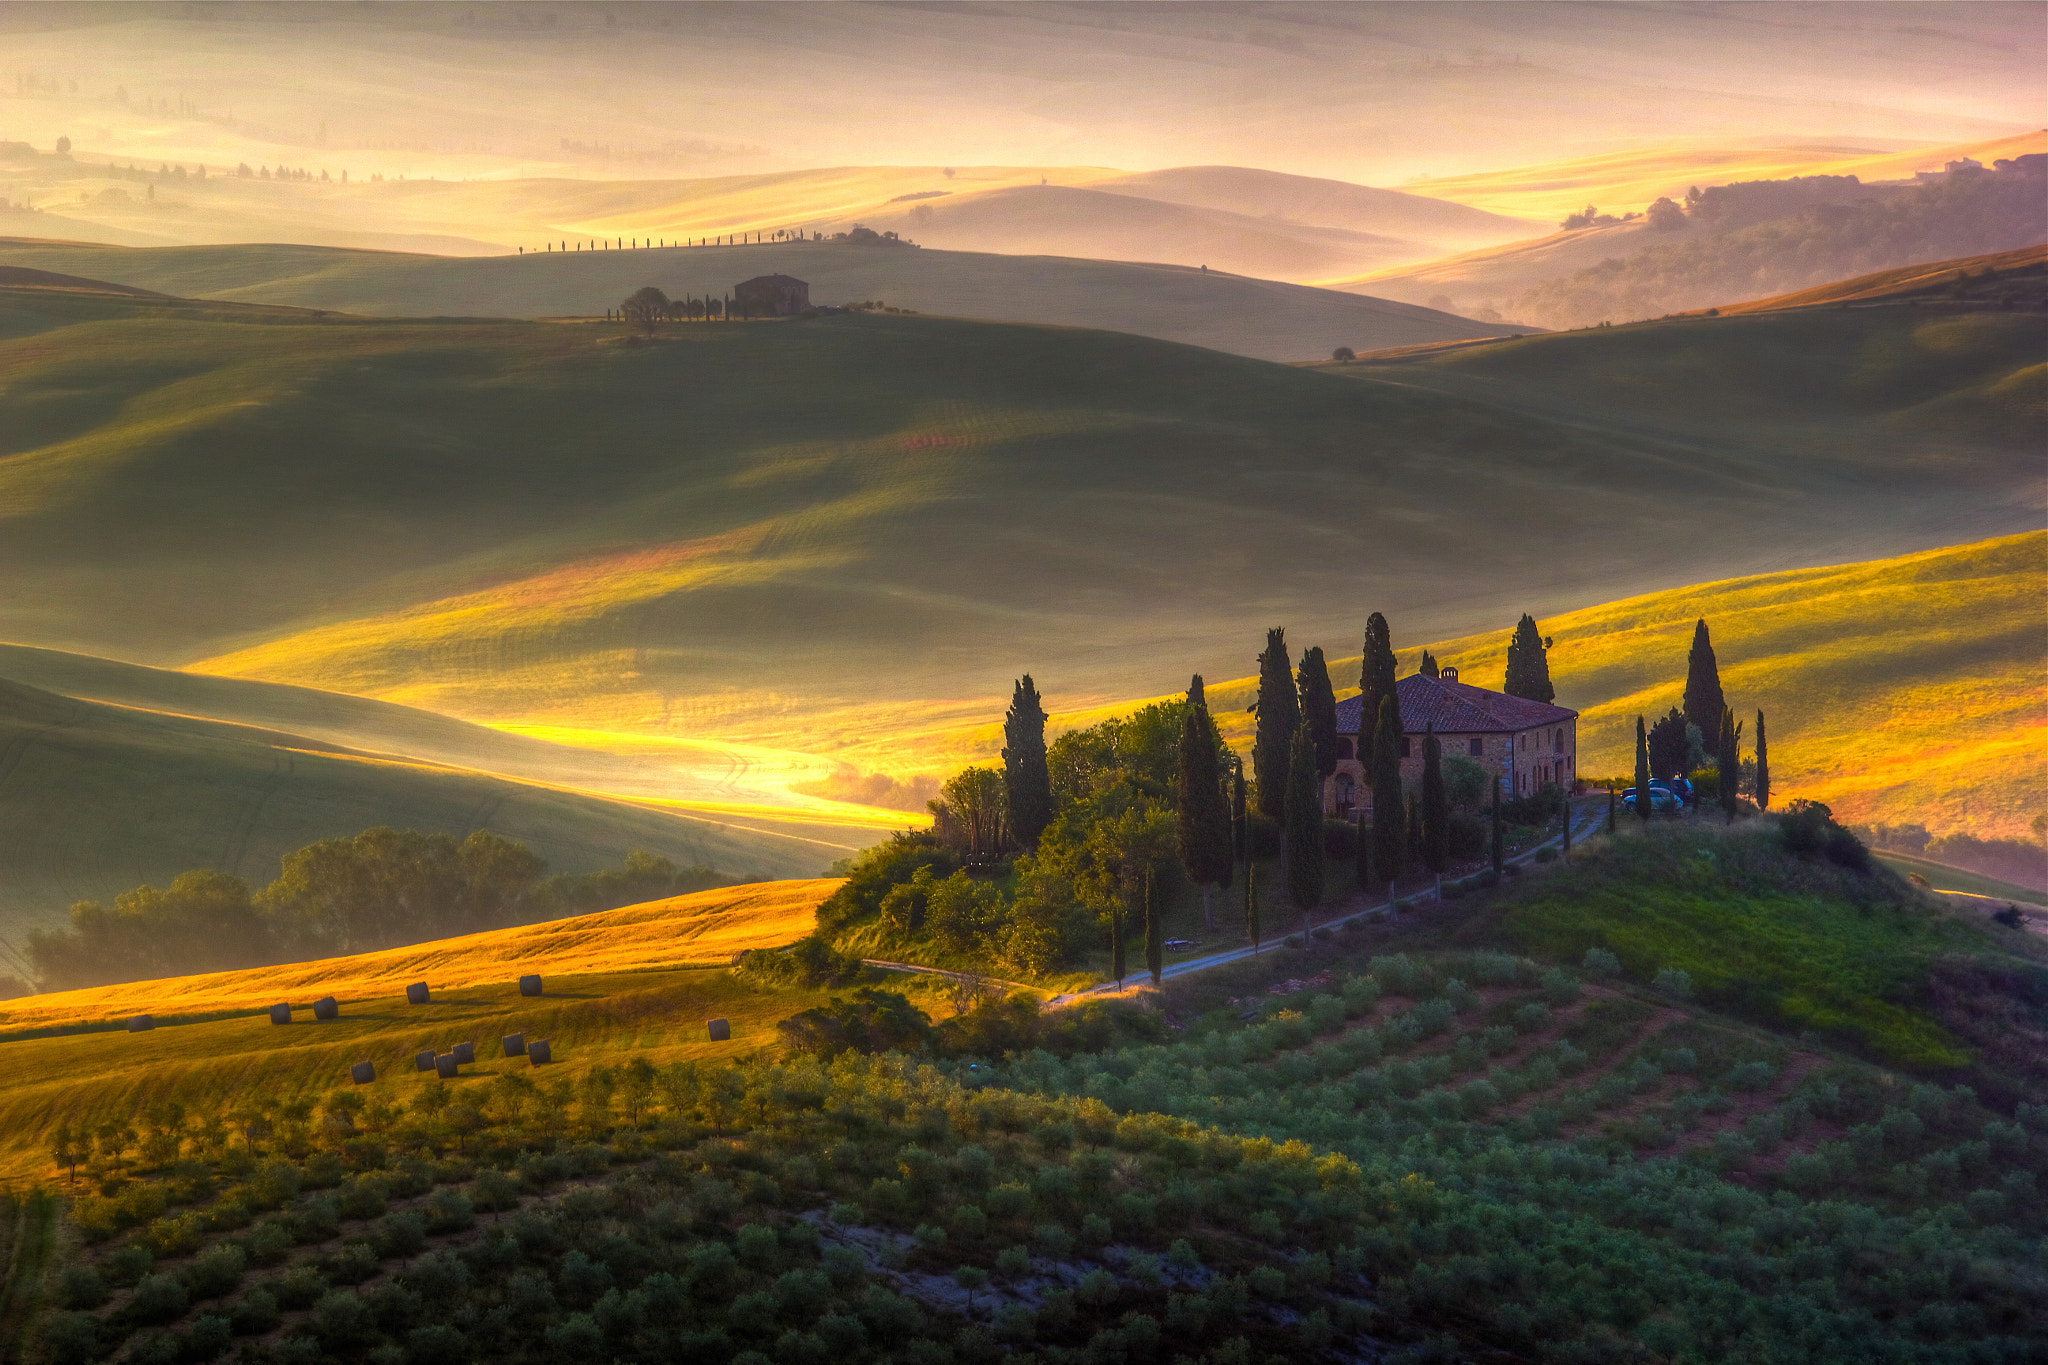 Photograph Toscana by Francesco Riccardo Iacomino on 500px